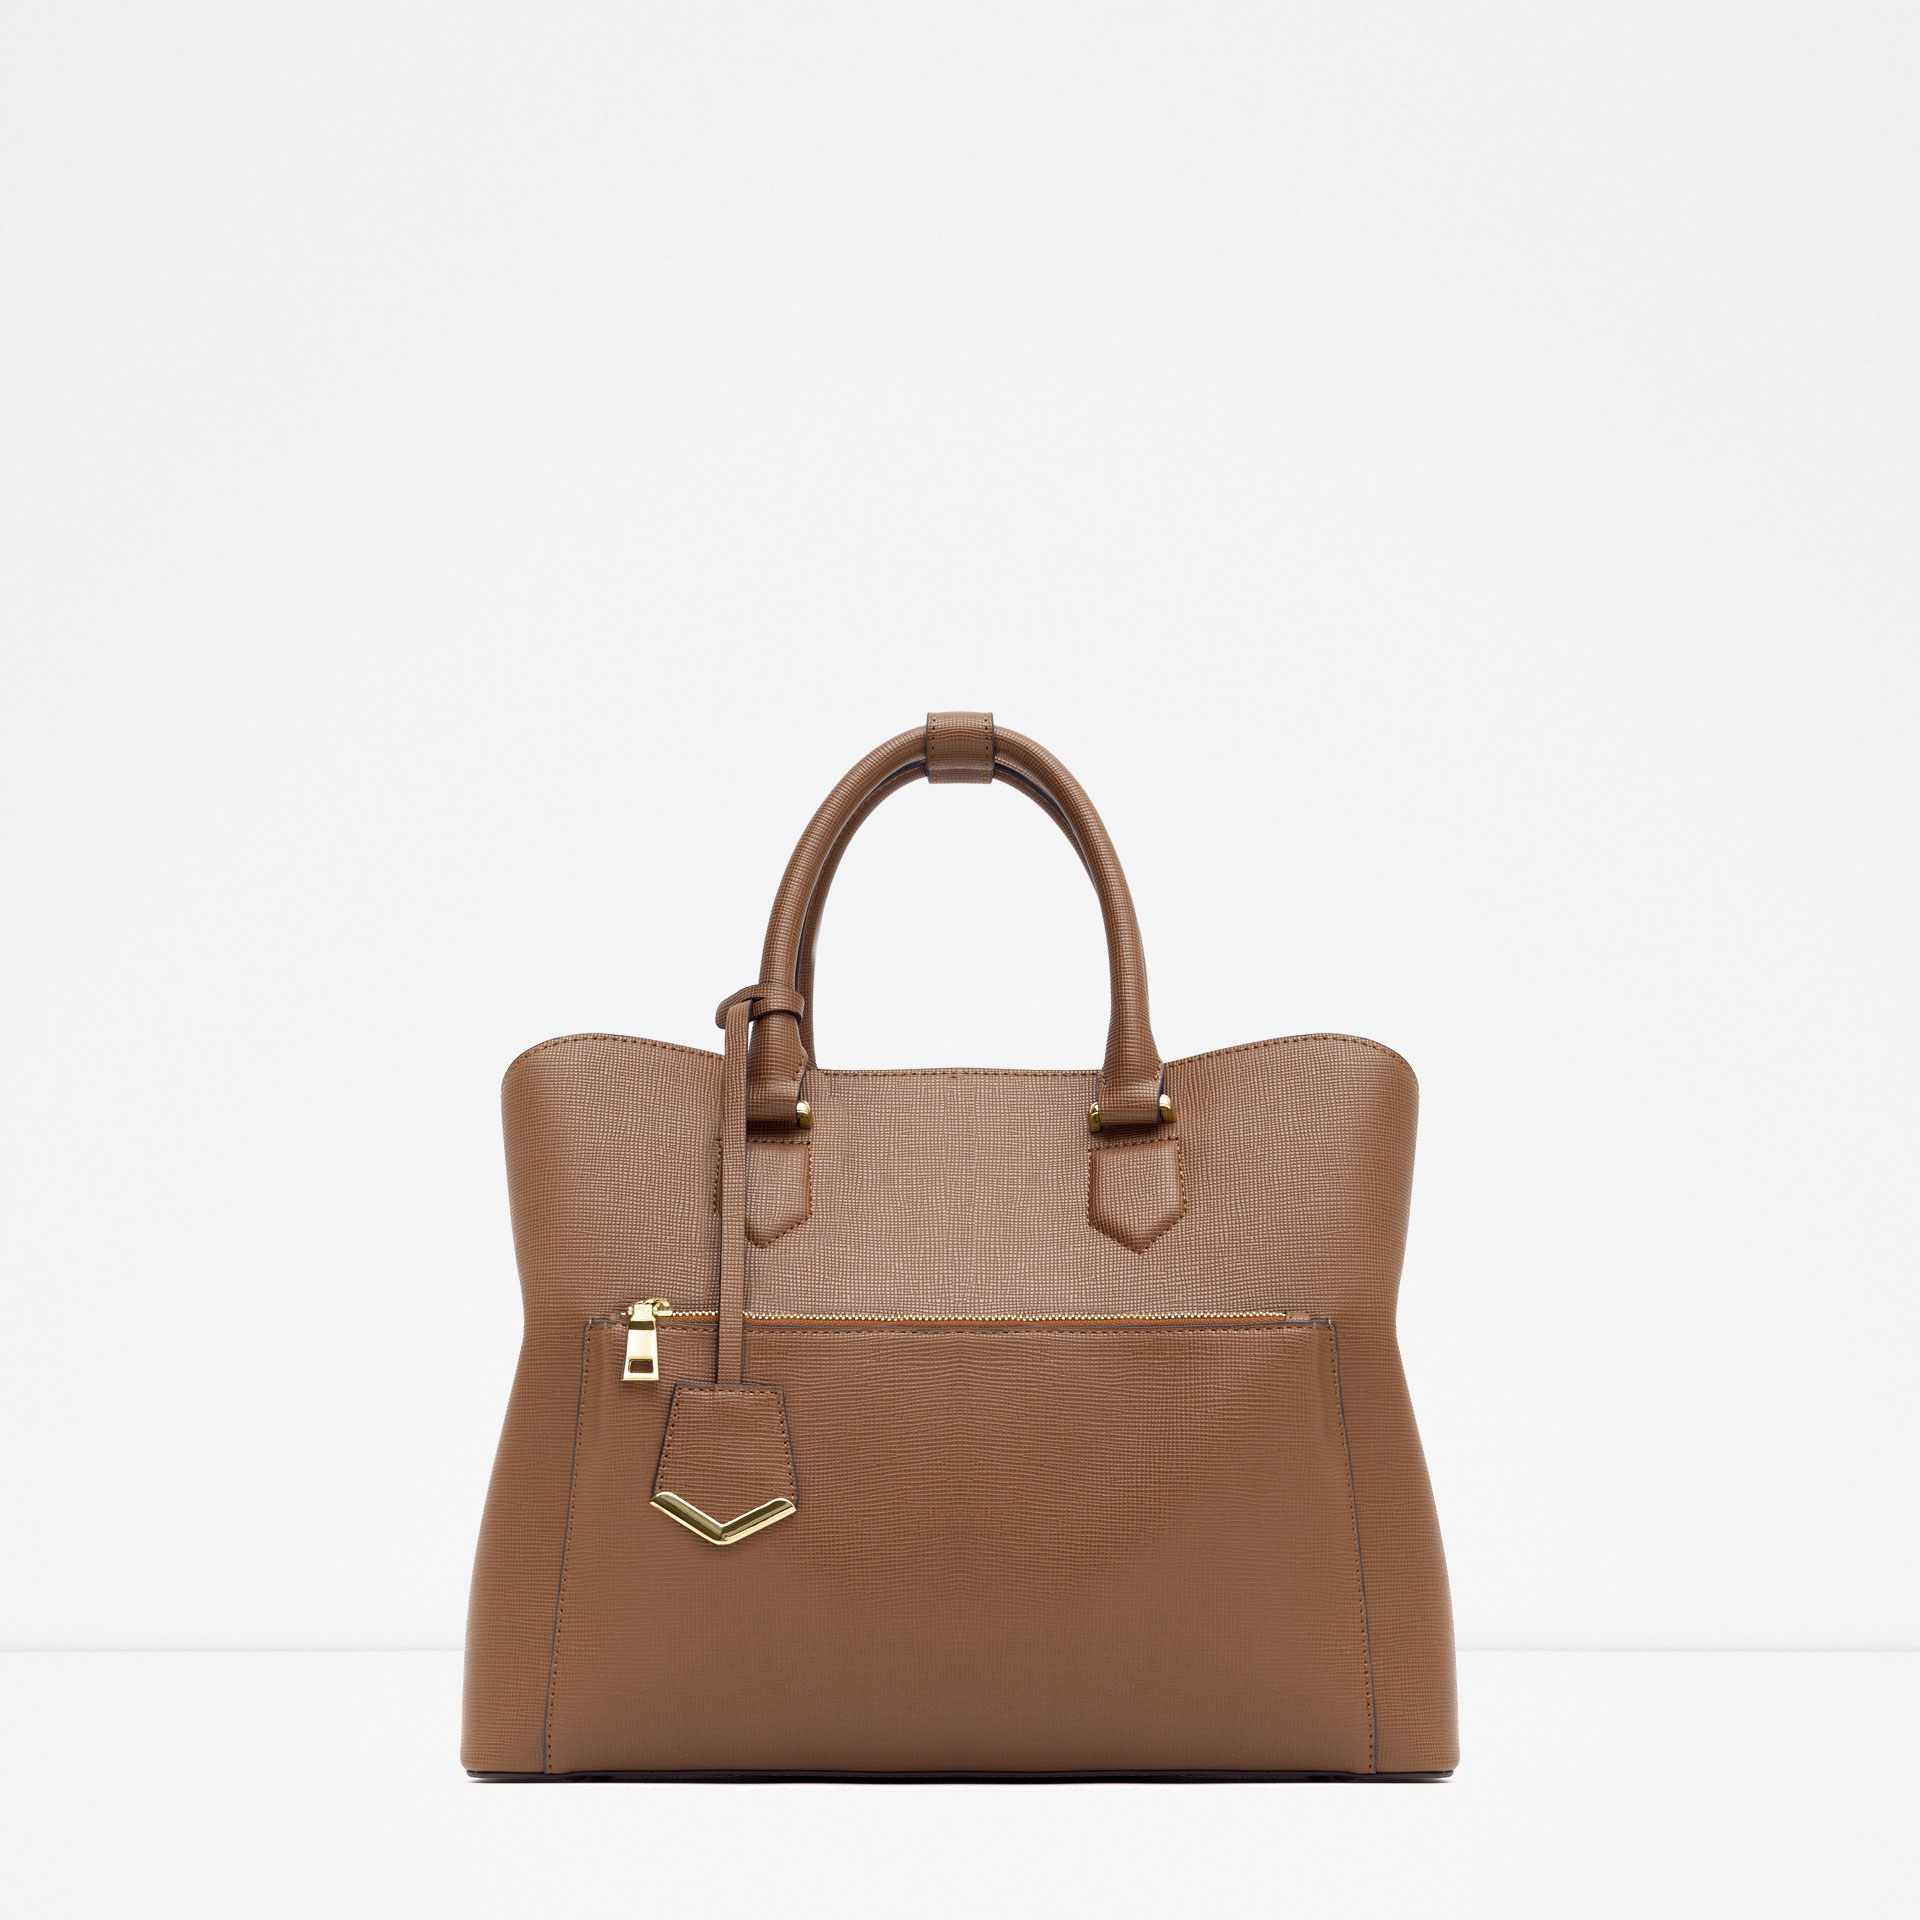 Zara Office City Bag in Brown | Lyst